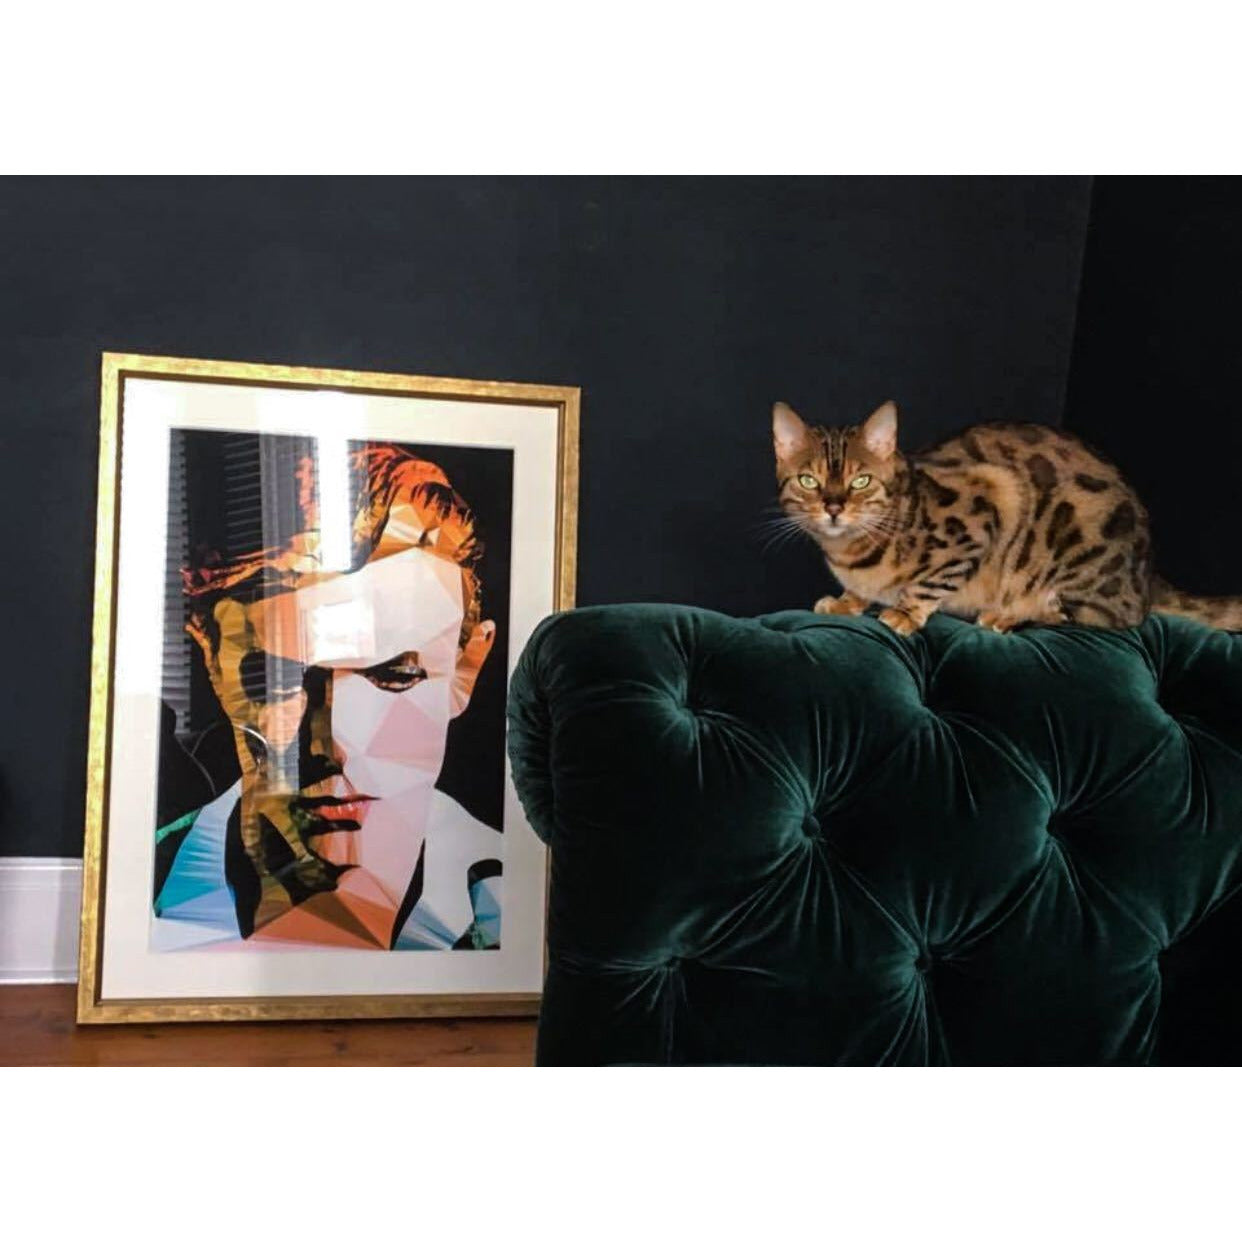 David Bowie by Baiba Auria - Limited Edition 24/500 signed art print - Egoiste Gallery